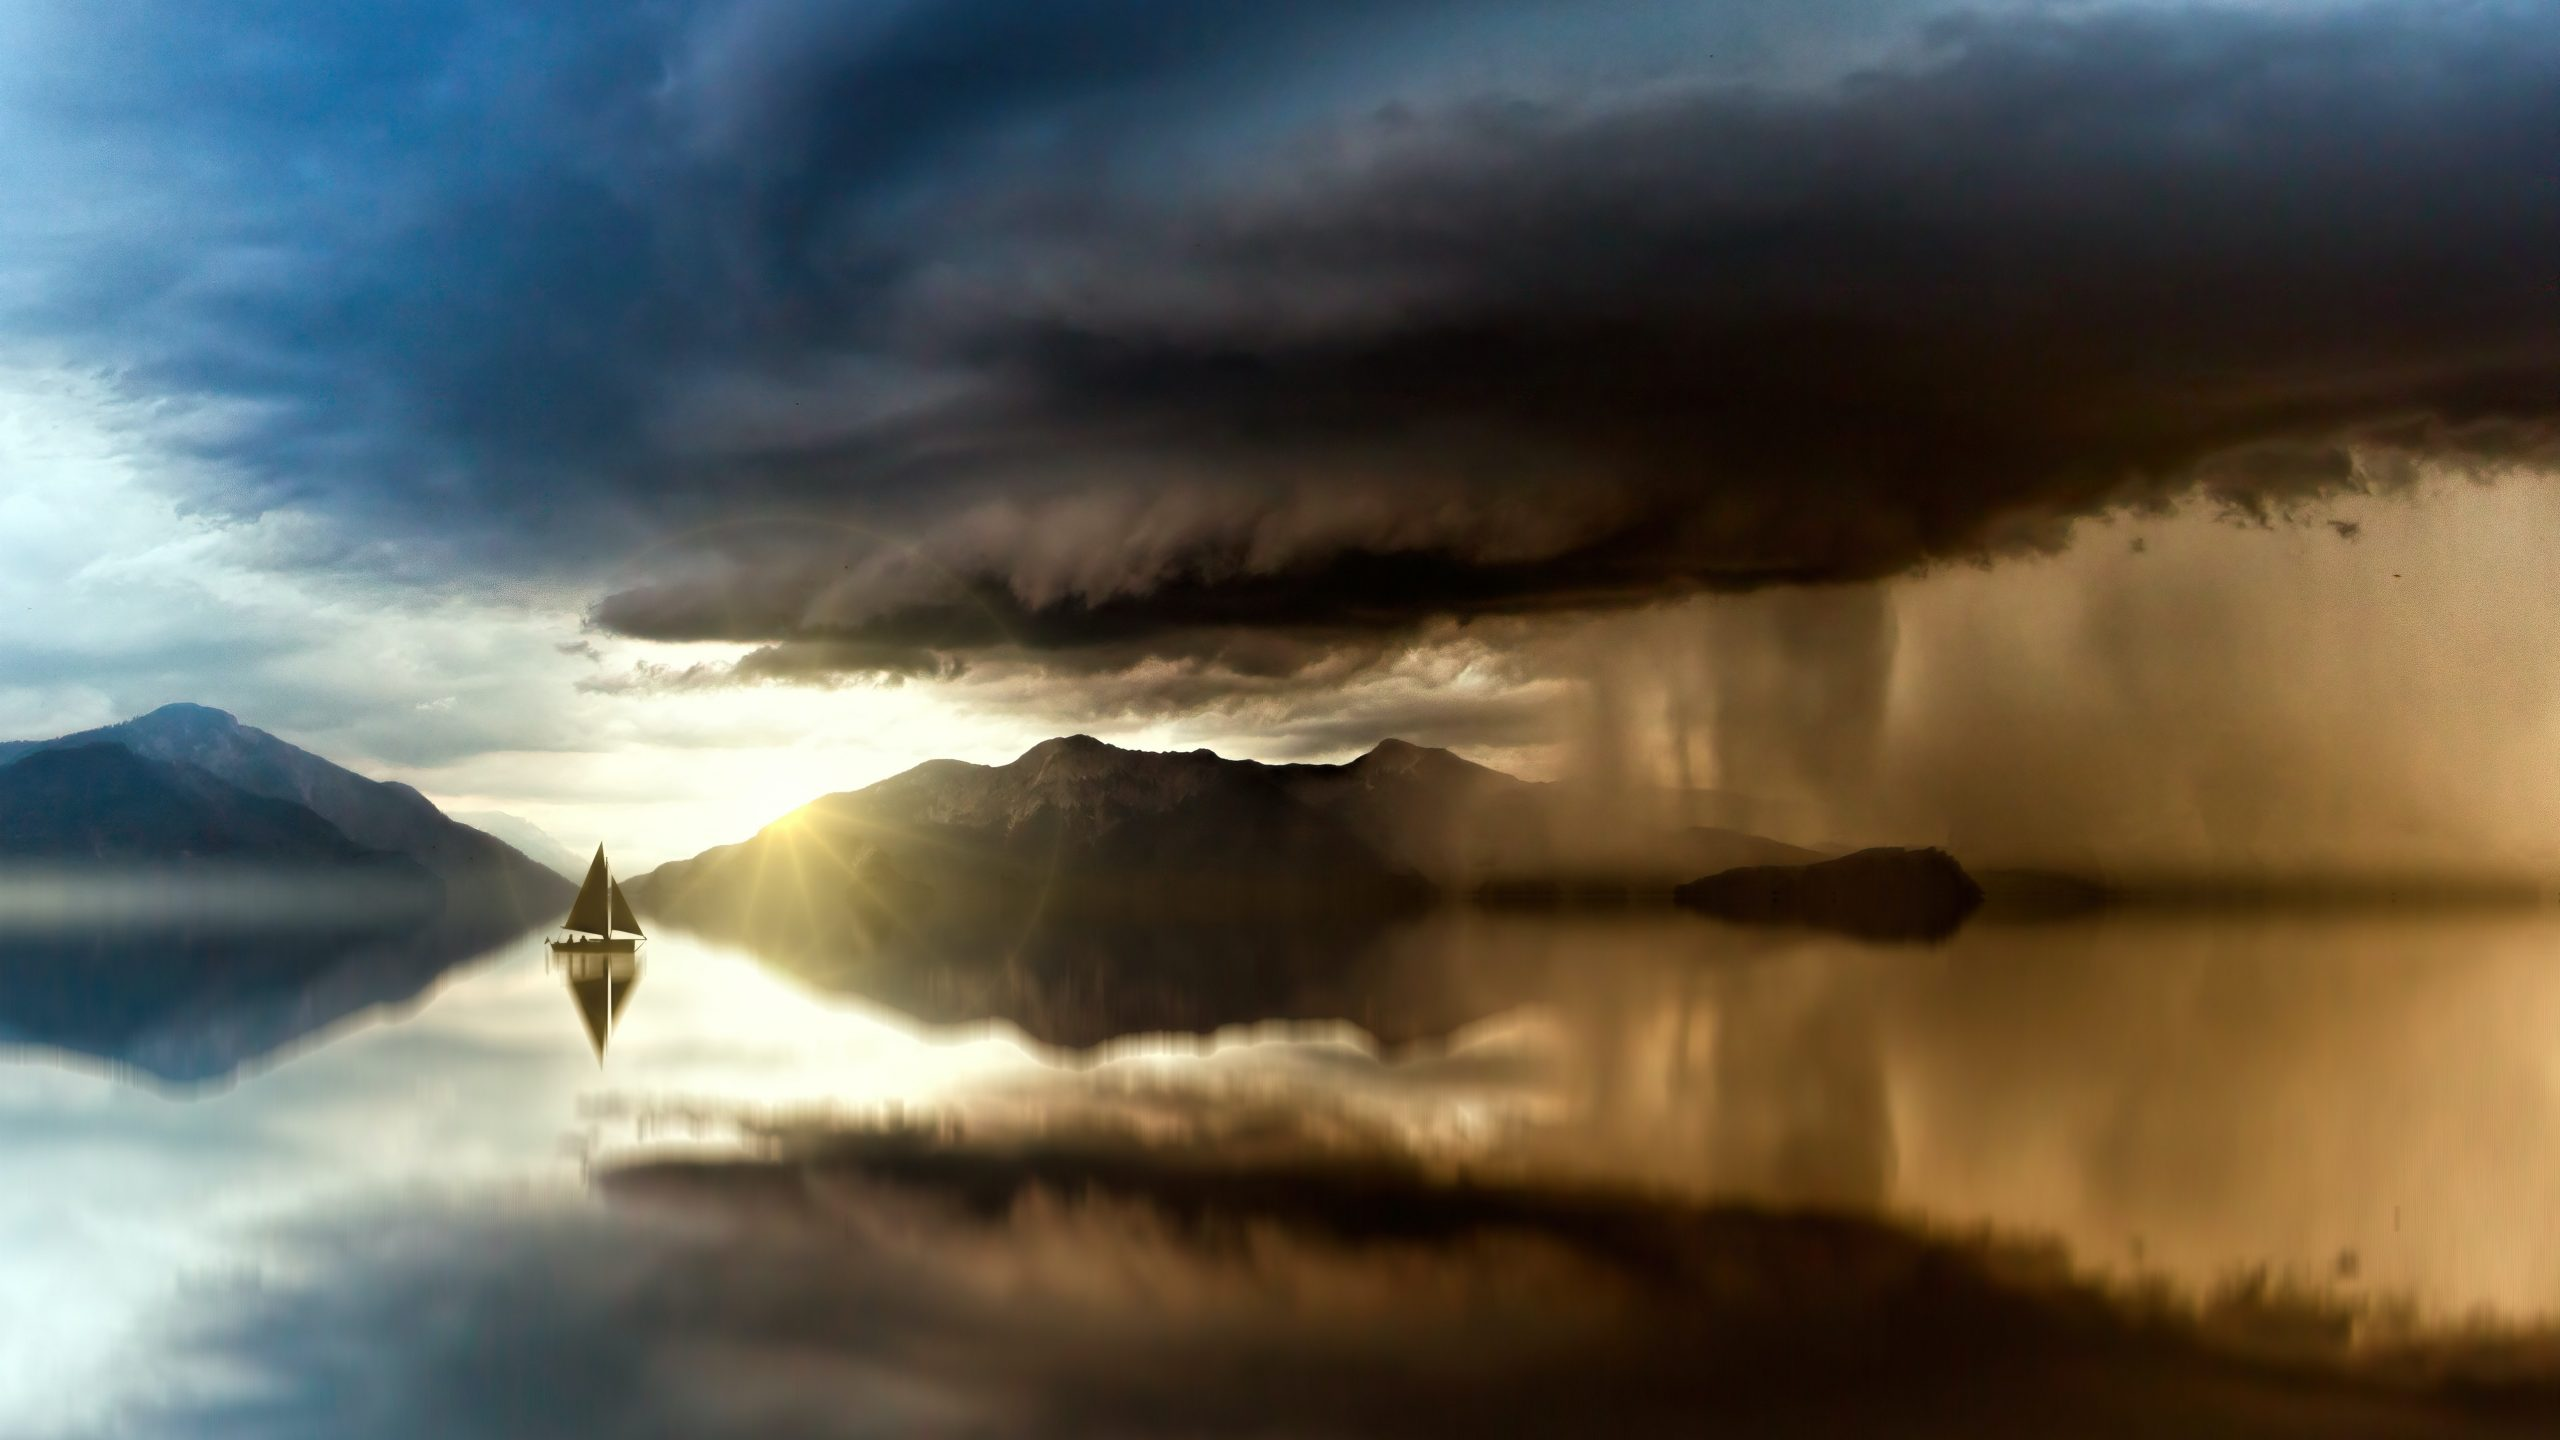 Seascape with boat showing the sun emerging after a rainstorm. Photo by Johannes Plenio from Pexels.